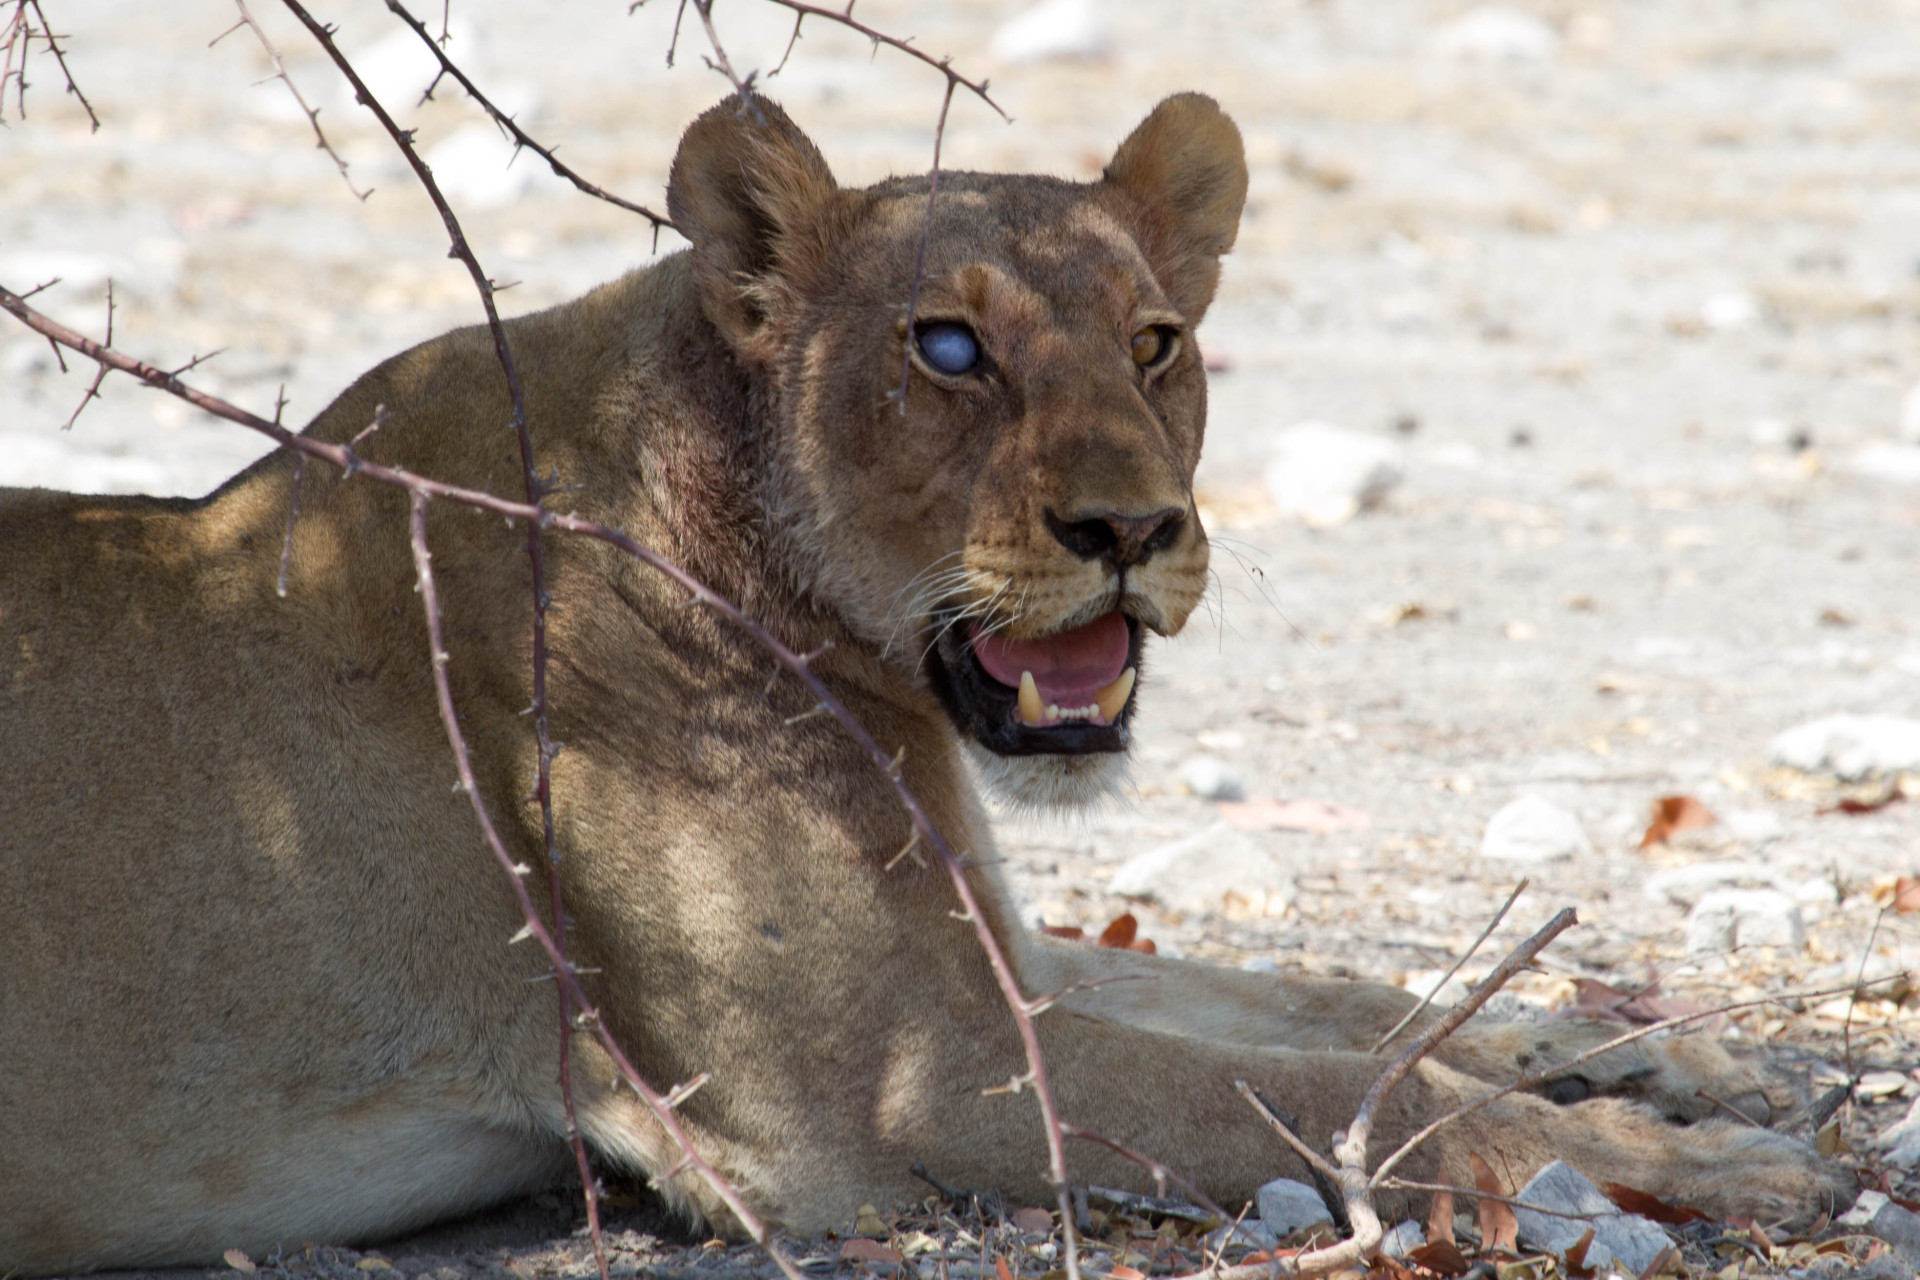 She was part of a pride of 8 ladies we saw just near the entrance to Etosha.